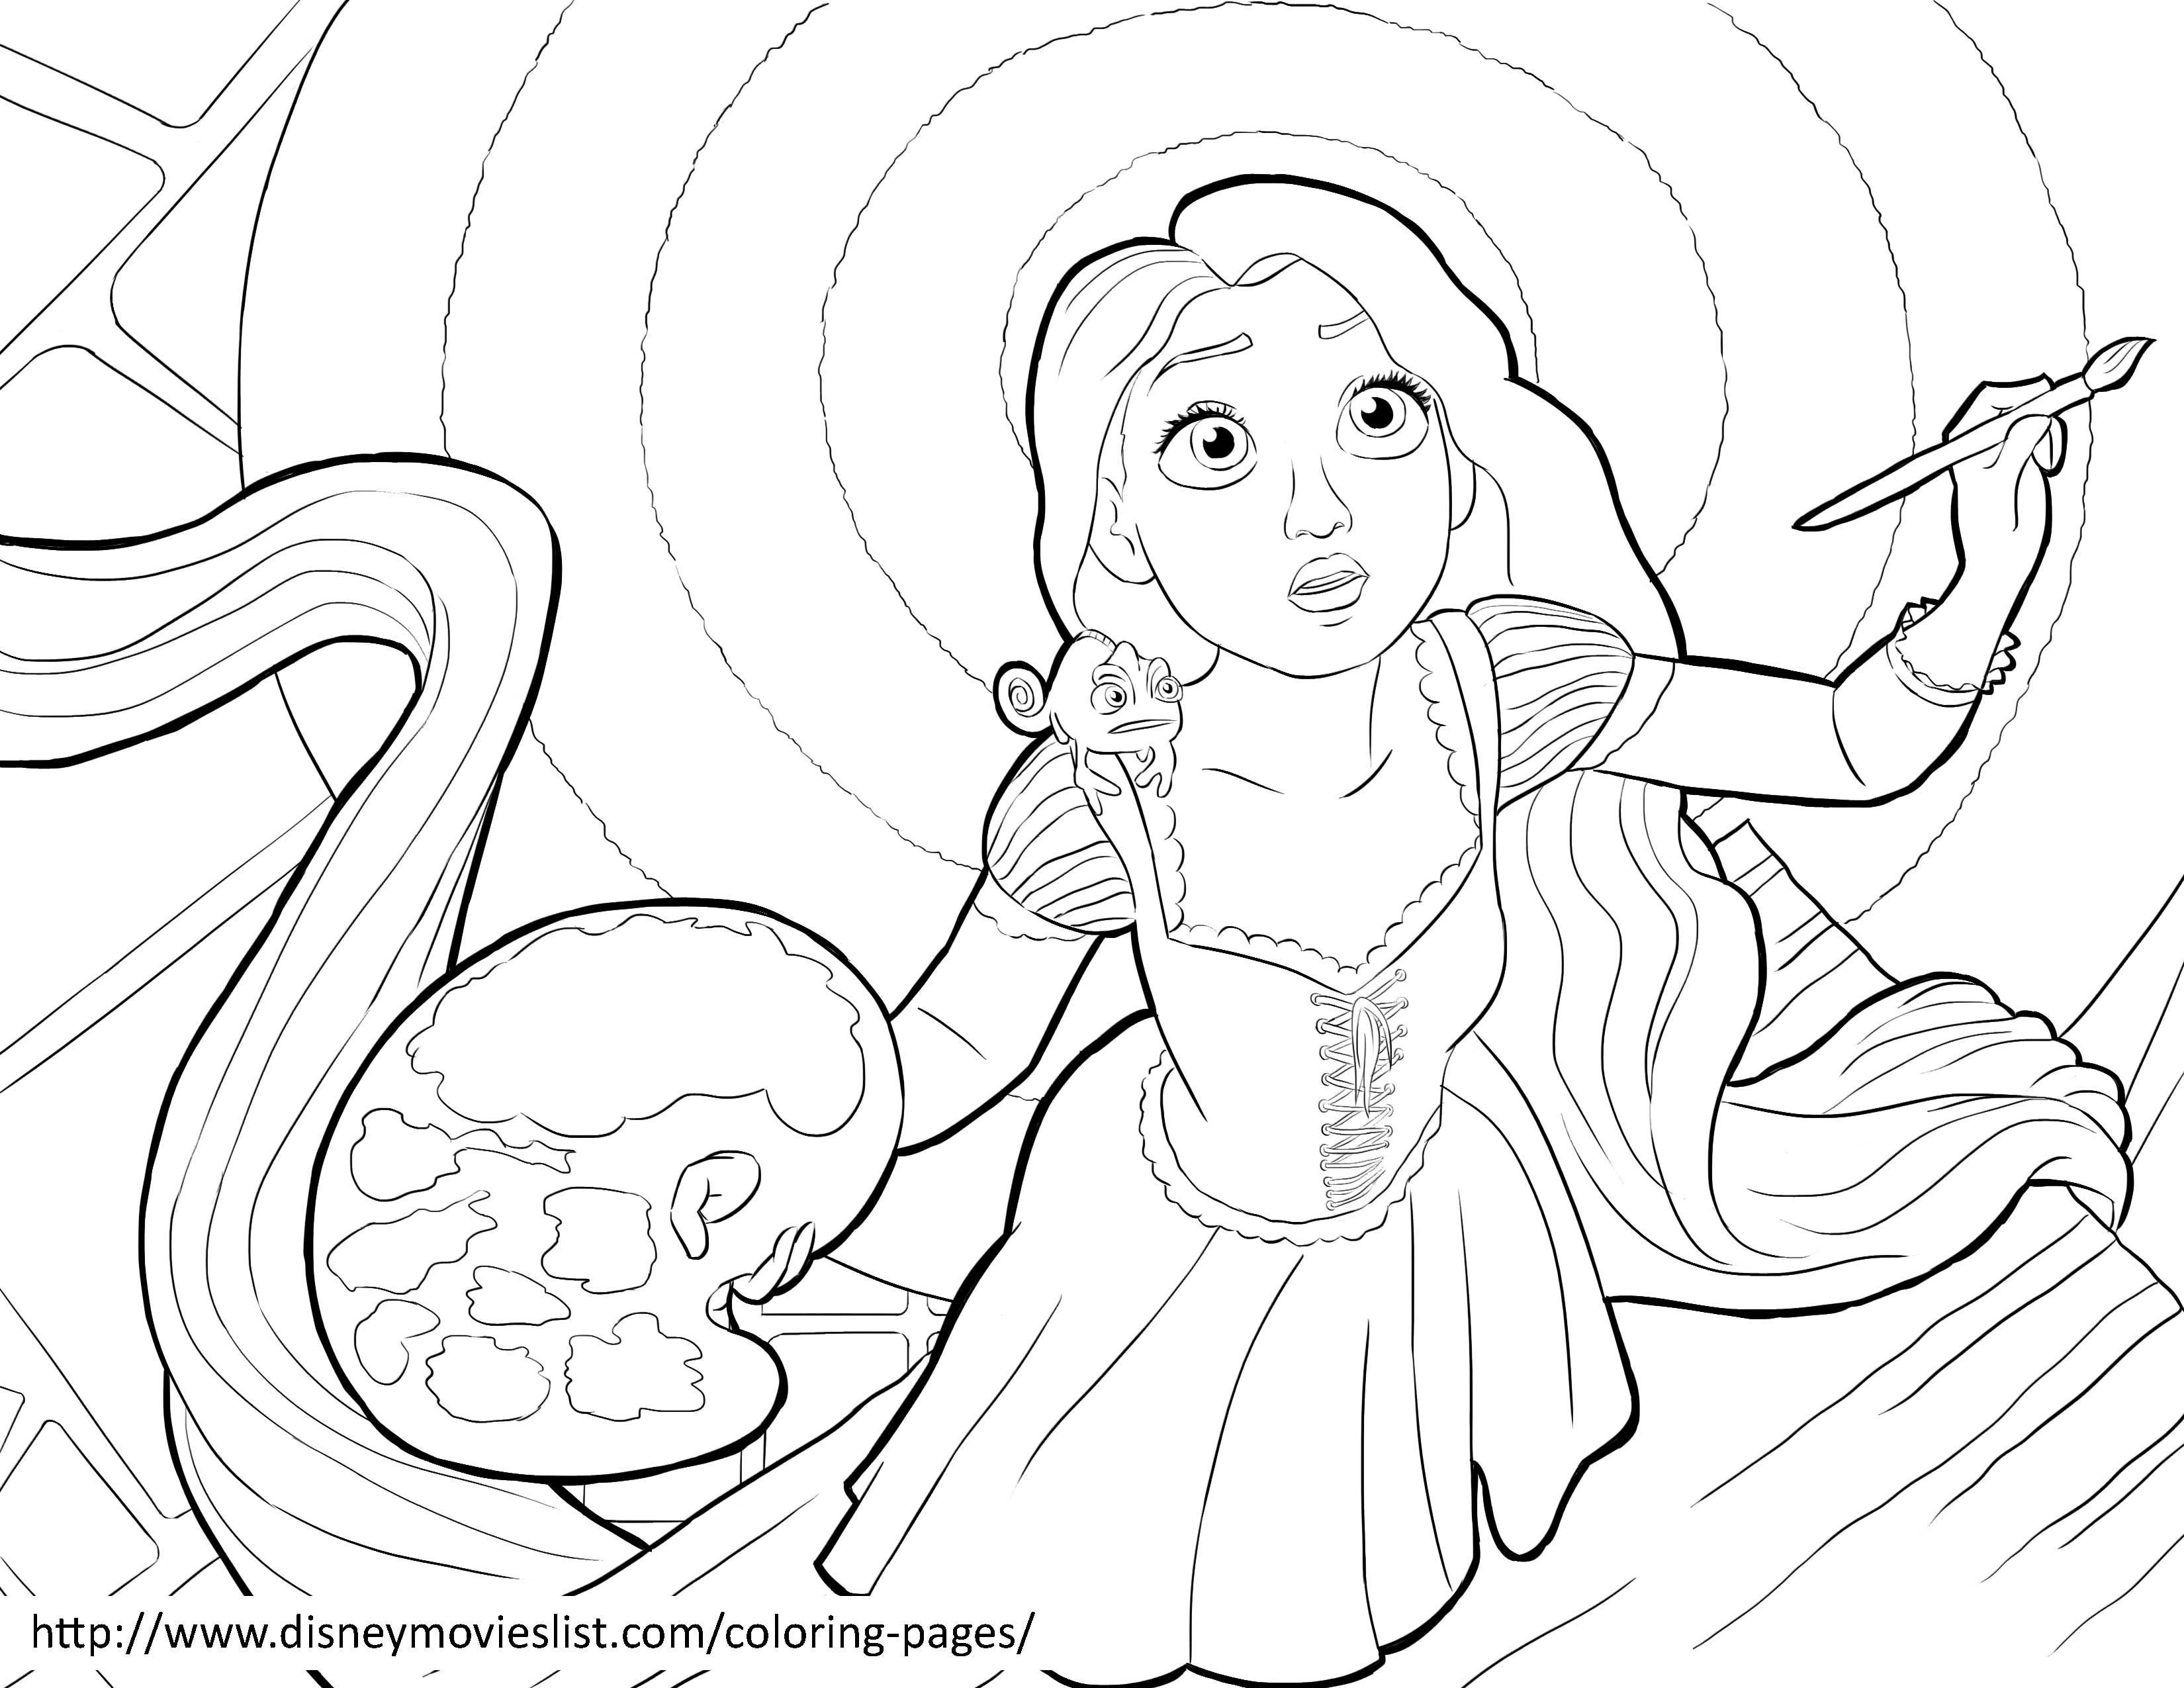 Rapunzel Coloring Pages 5